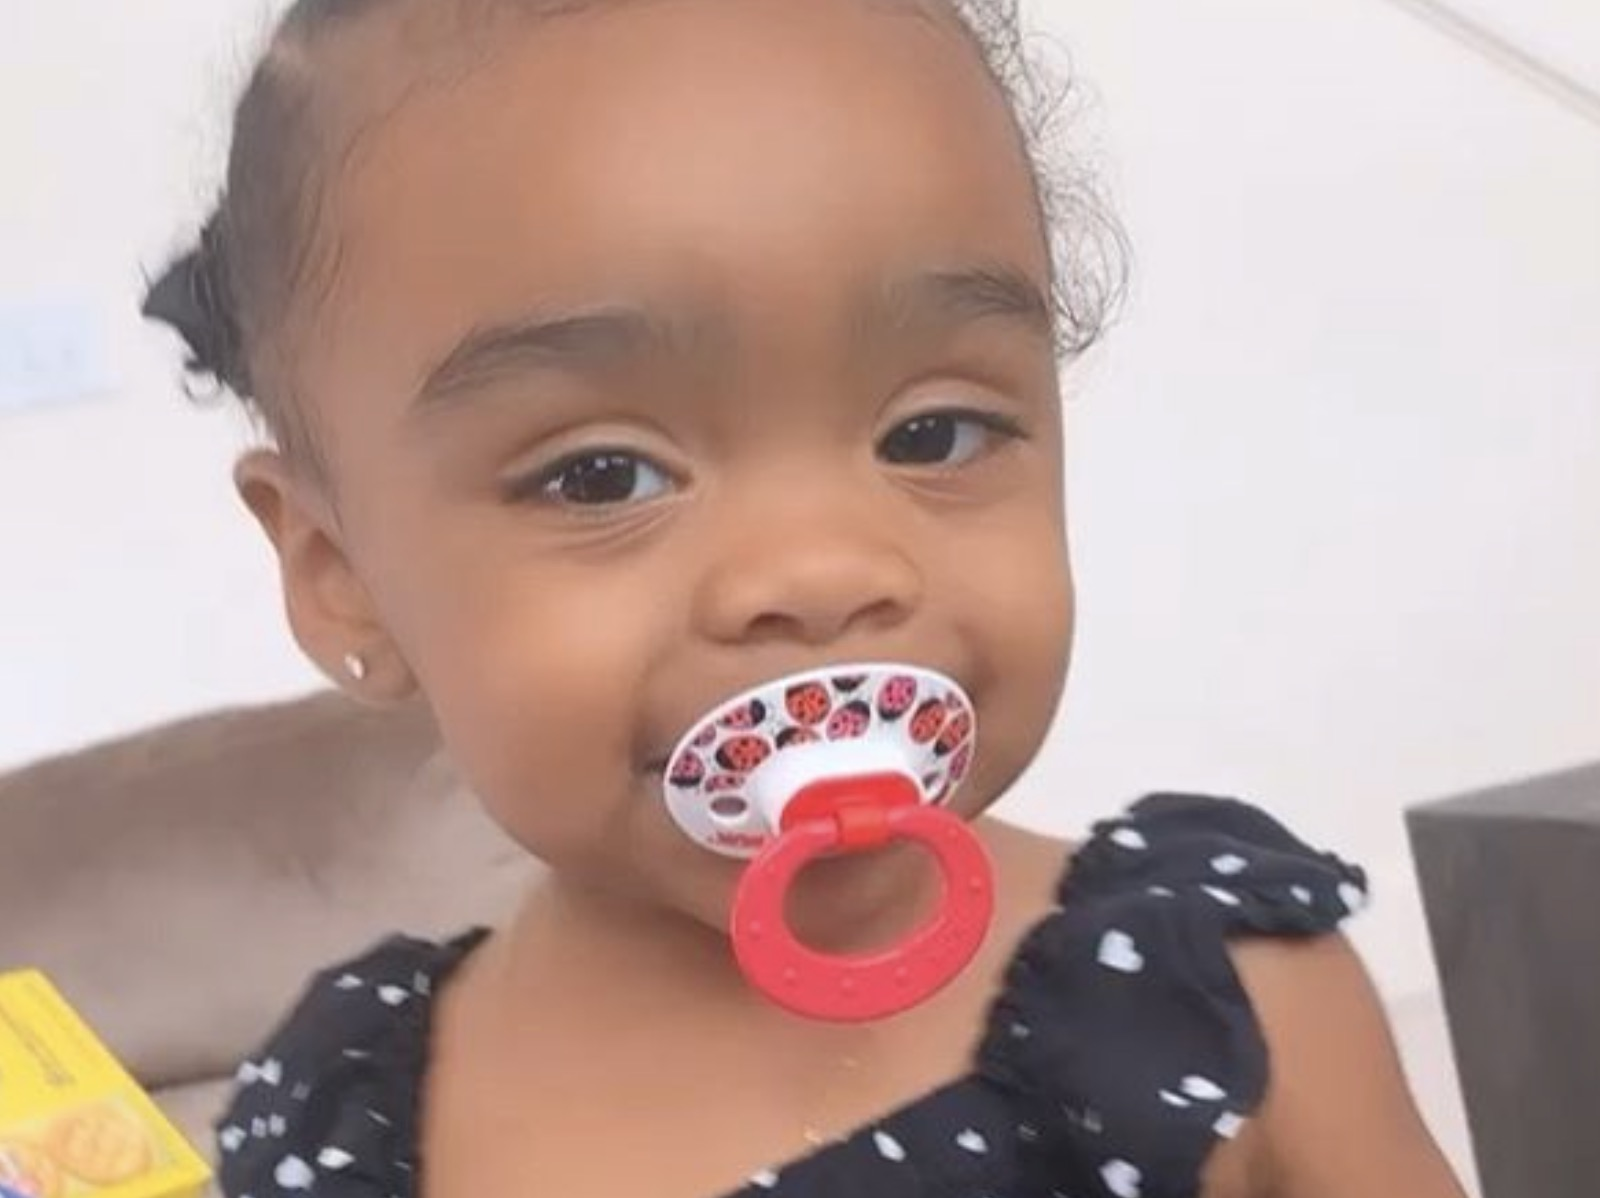 Toya Johnson's Baby Girl, Reign Rushing Makes Her Dad, Robert Rushing A Chai Latte - See The Sweet Video